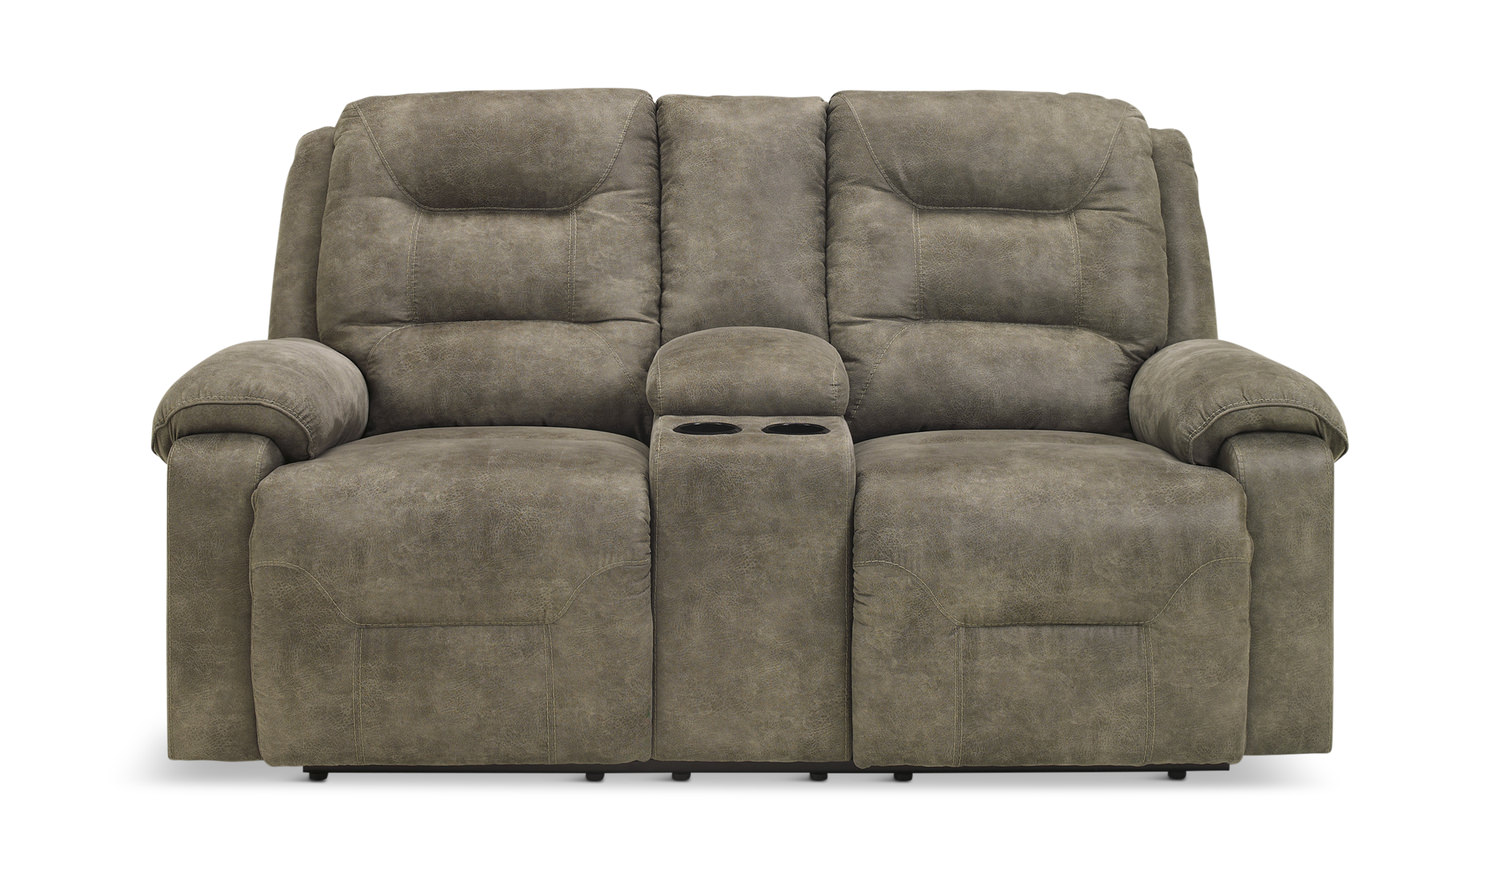 Prime Swish Reclining Loveseat With Console Gamerscity Chair Design For Home Gamerscityorg